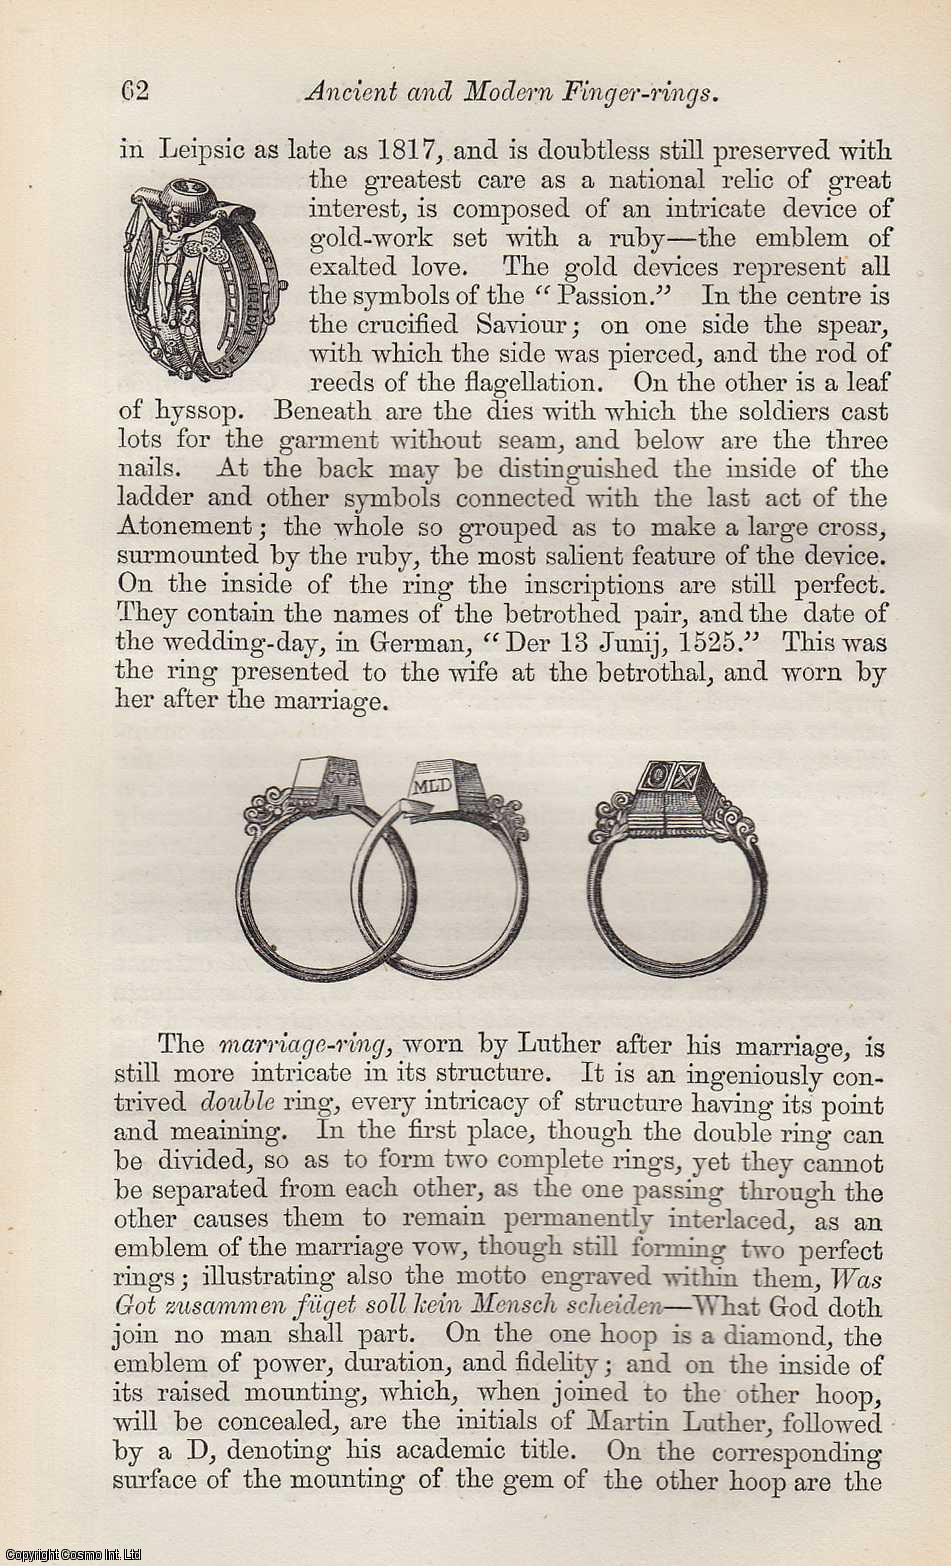 Ancient and Modern Finger-Rings., Humphreys, H. Noel